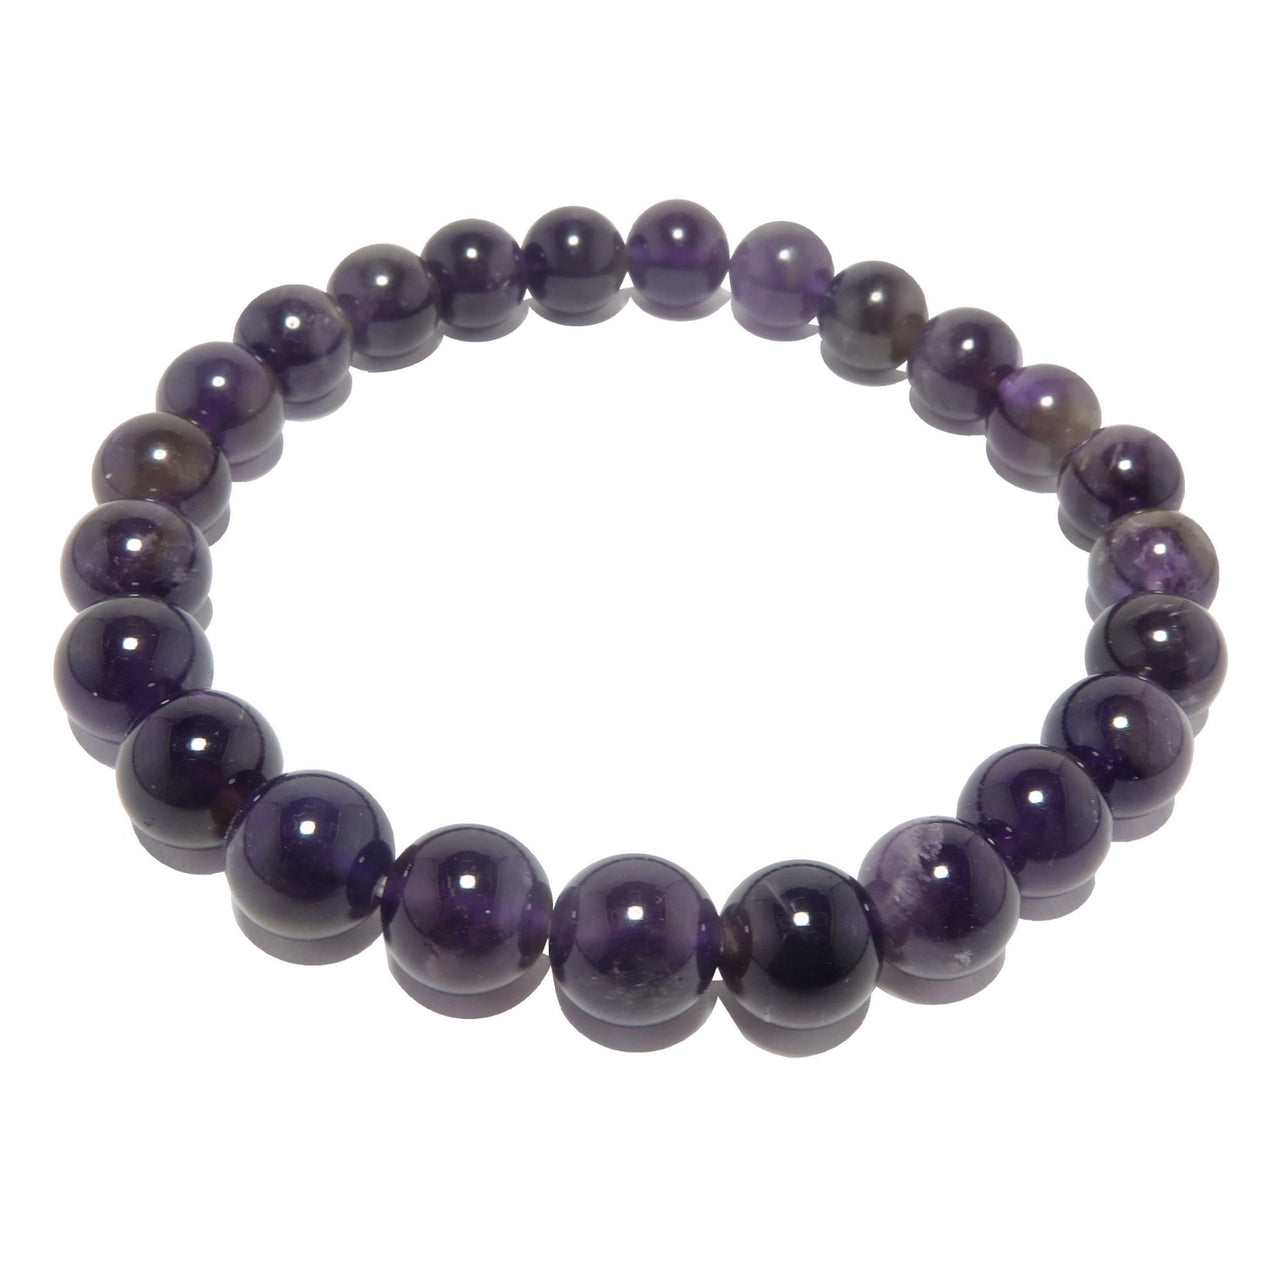 Amethyst Bracelet 7mm Dark Purple Round Stretch Spiritual Gem Crystal Healing Birthstone B01